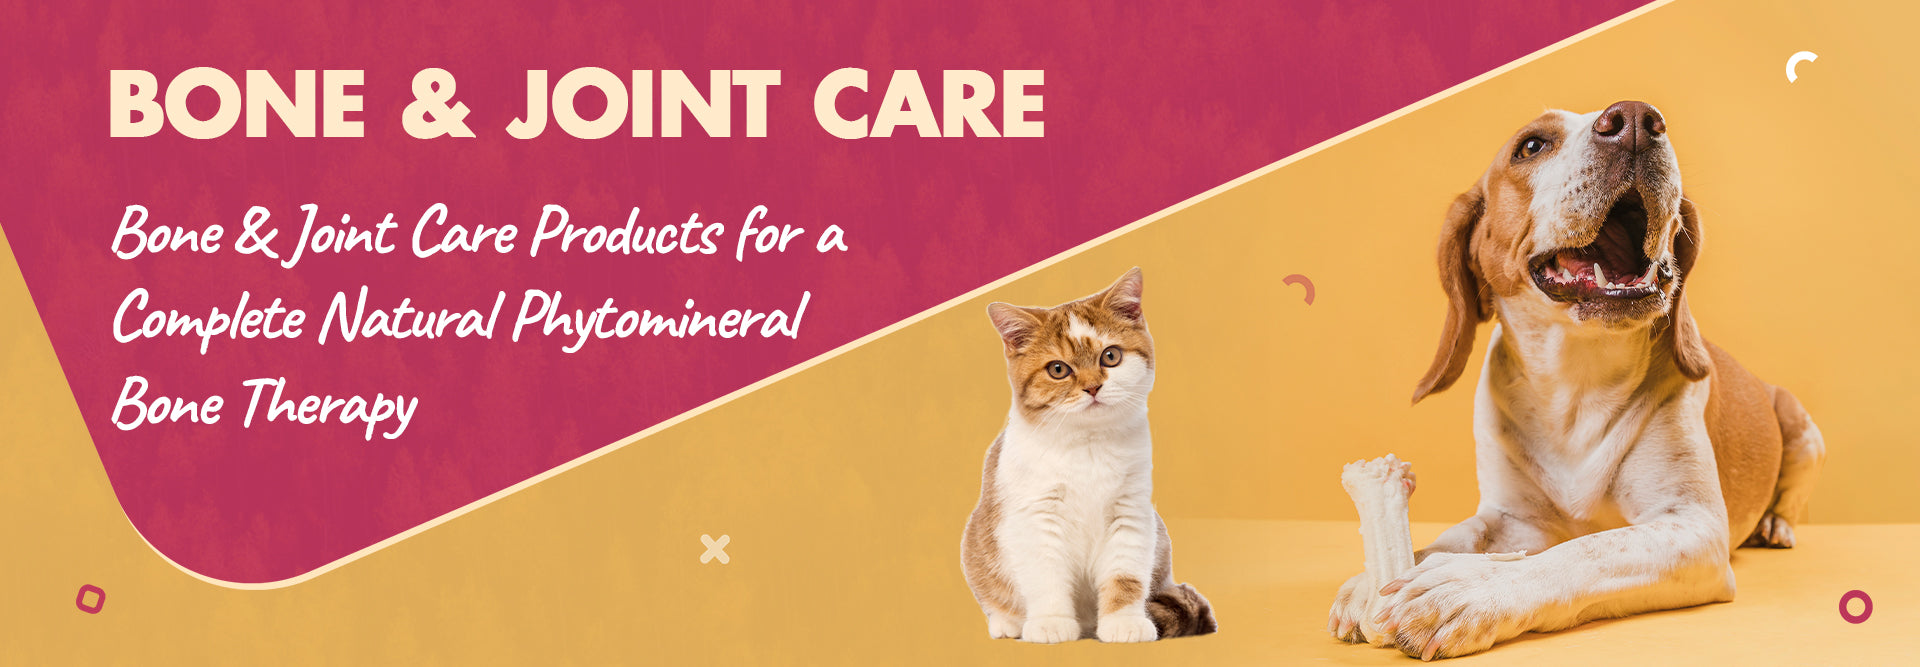 BONE_JOINT_CARE